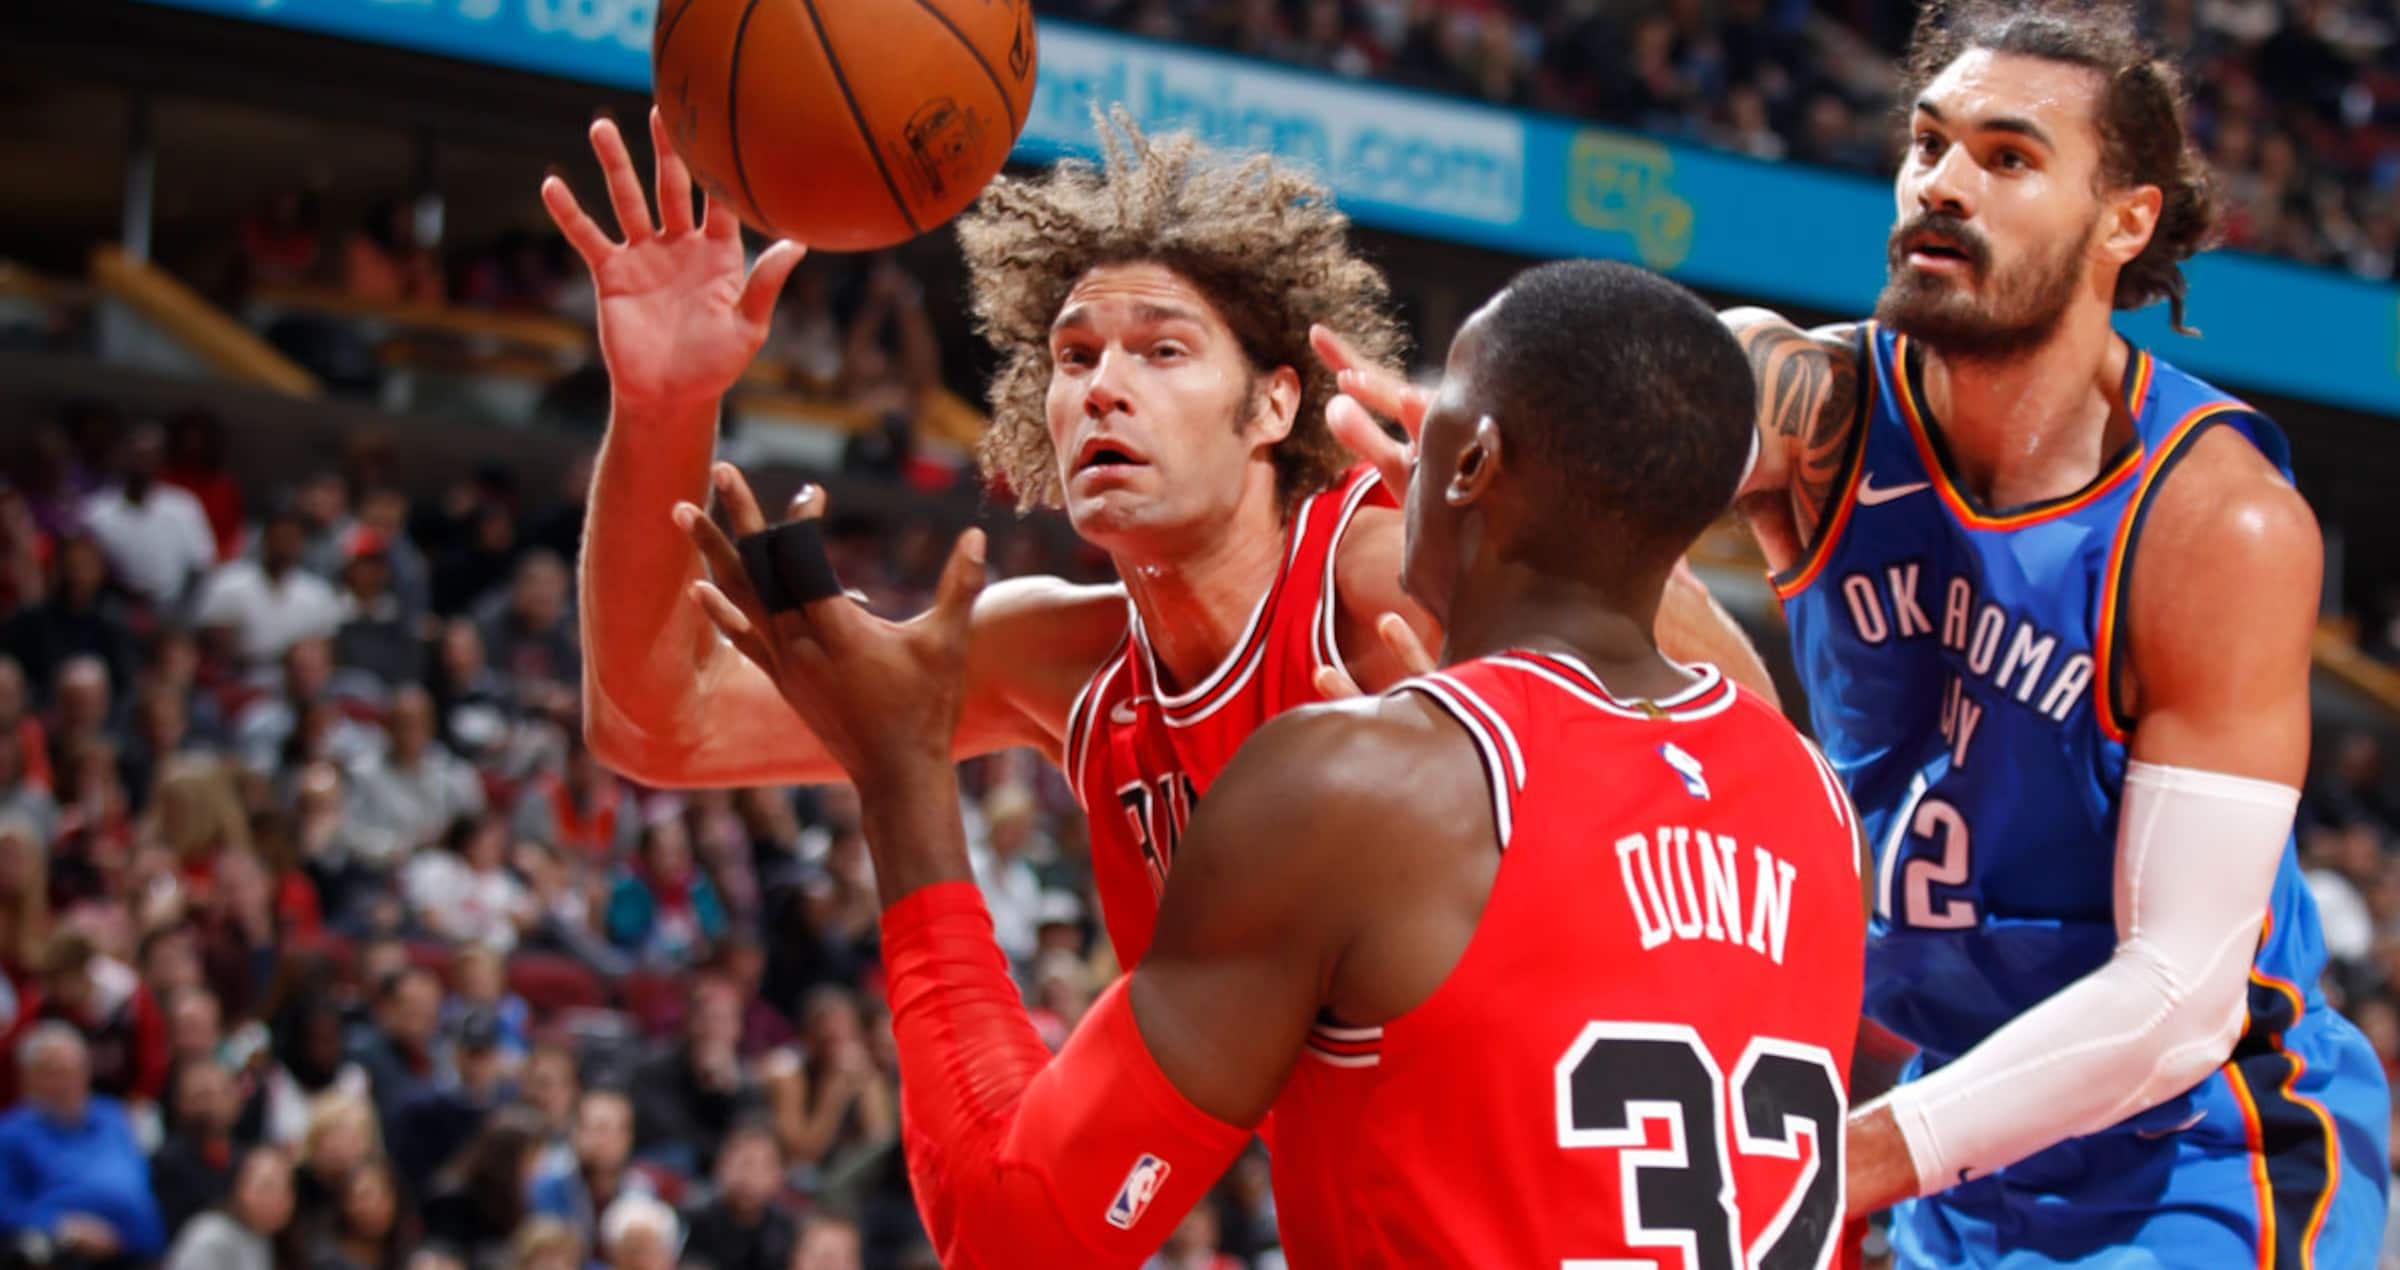 Robin Lopez and Kris Dunn of the Chicago Bulls passing the ball in a game against the Oklahoma City Thunder on October 28, 2017 at the United Center